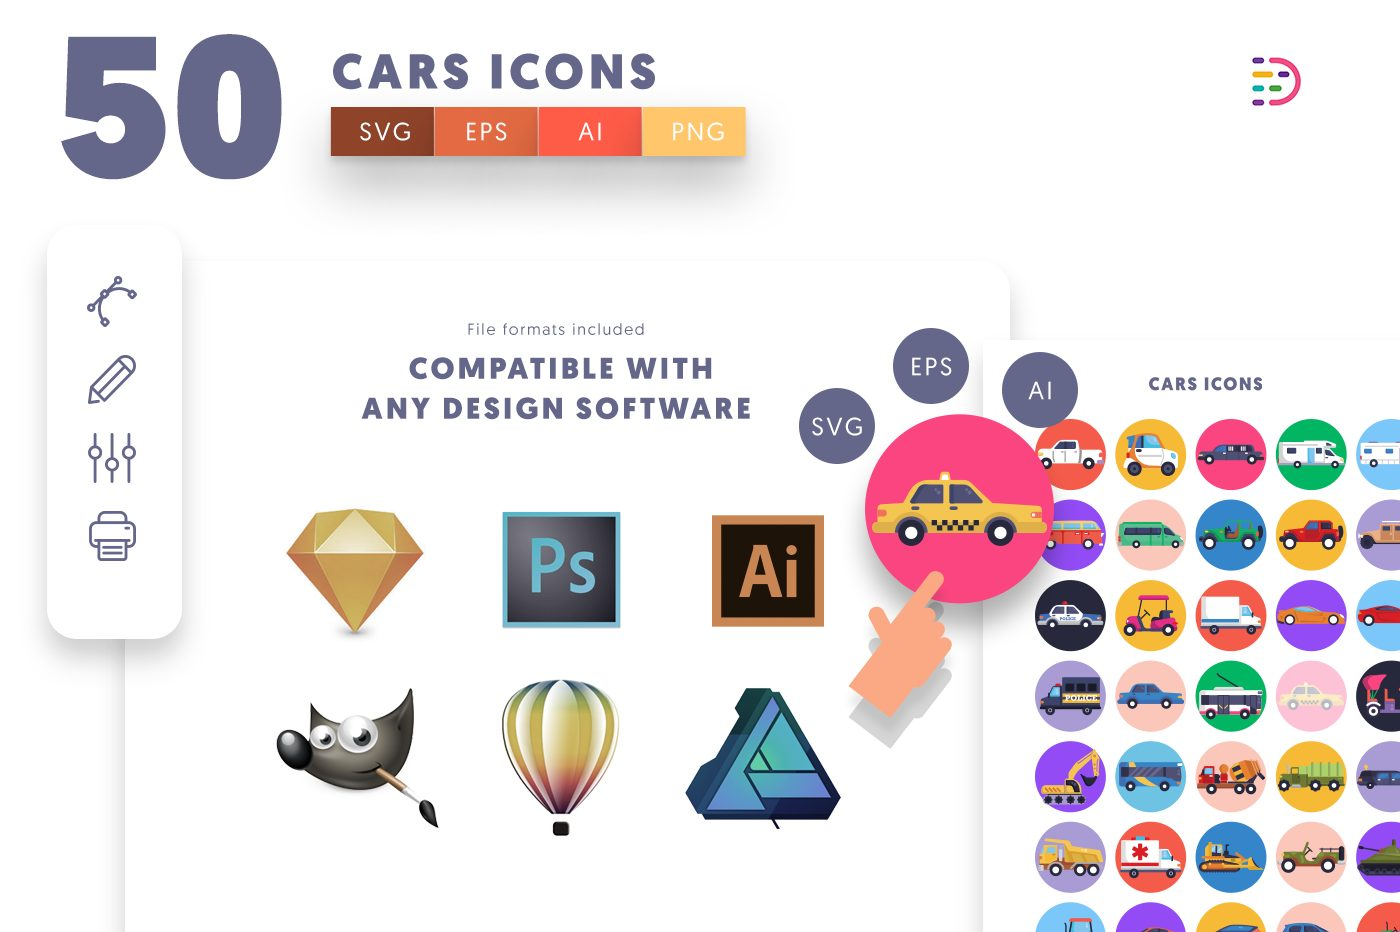 full vector 50 Cars Icons EPS, SVG, PNG